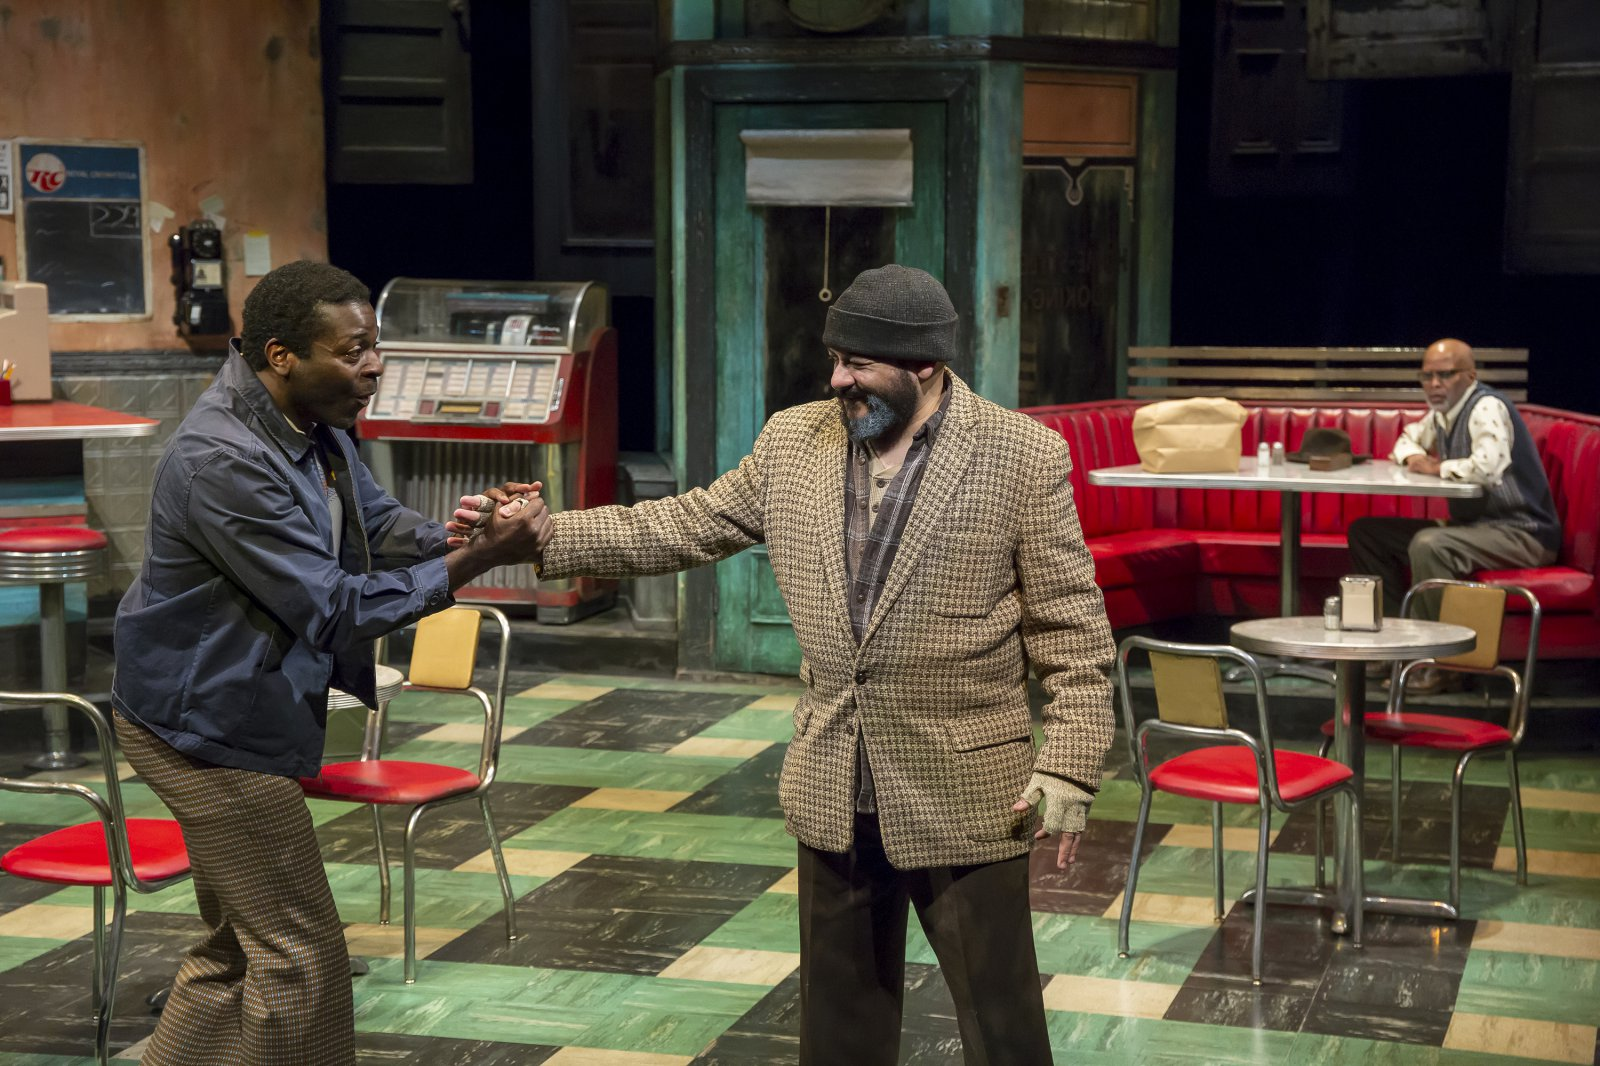 Sterling (Chiké Johnson), Hambone (Frank Britton) and Holloway (Michael Anthony Williams) in Milwaukee Repertory Theater's production of August Wilson's Two Trains Running April 16 – May 12, 2019